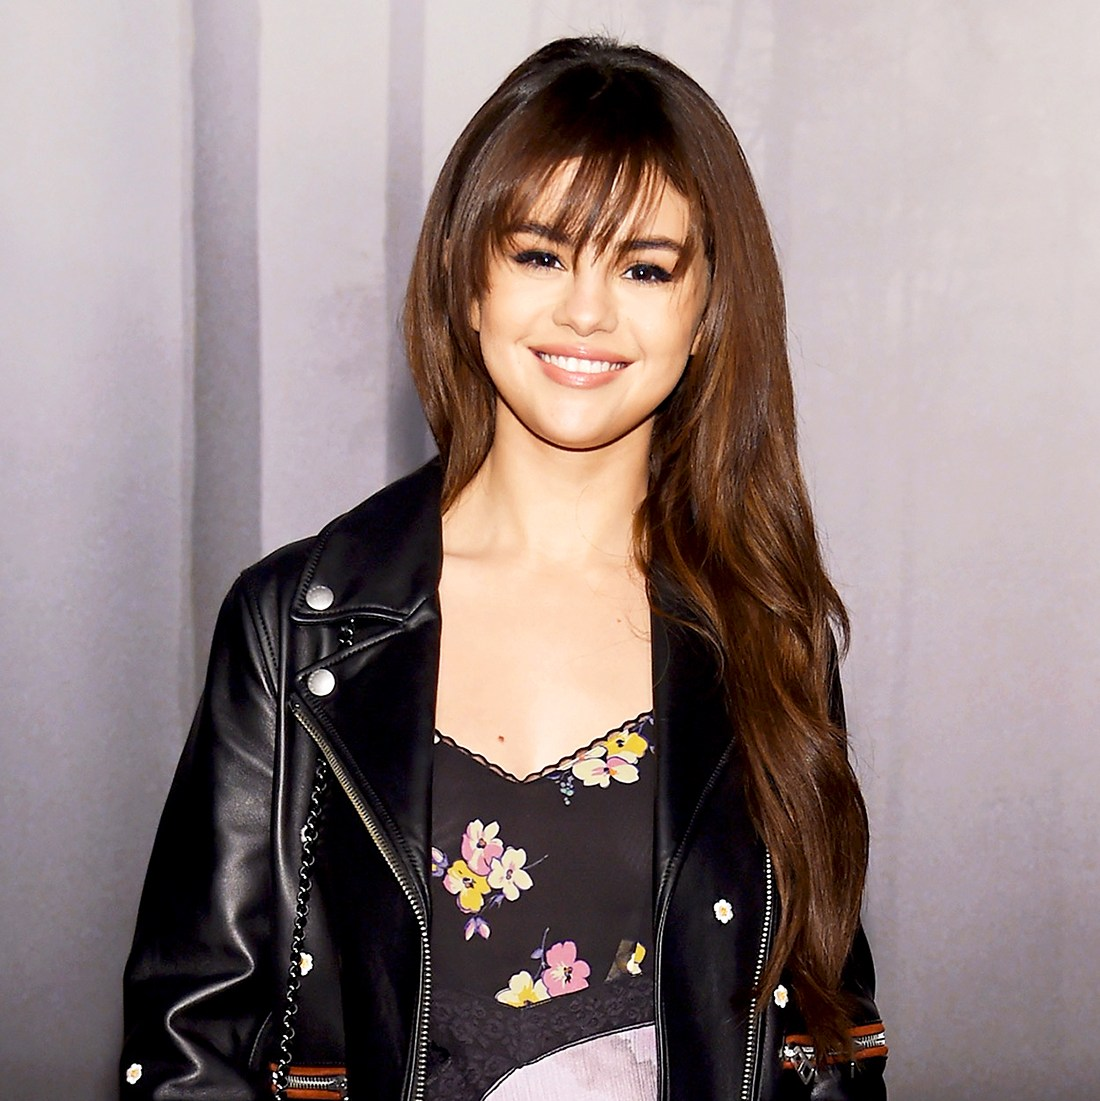 Selena Gomez attends the Coach Fall 2018 Runway Show at Basketball City on February 13, 2018 in New York City.